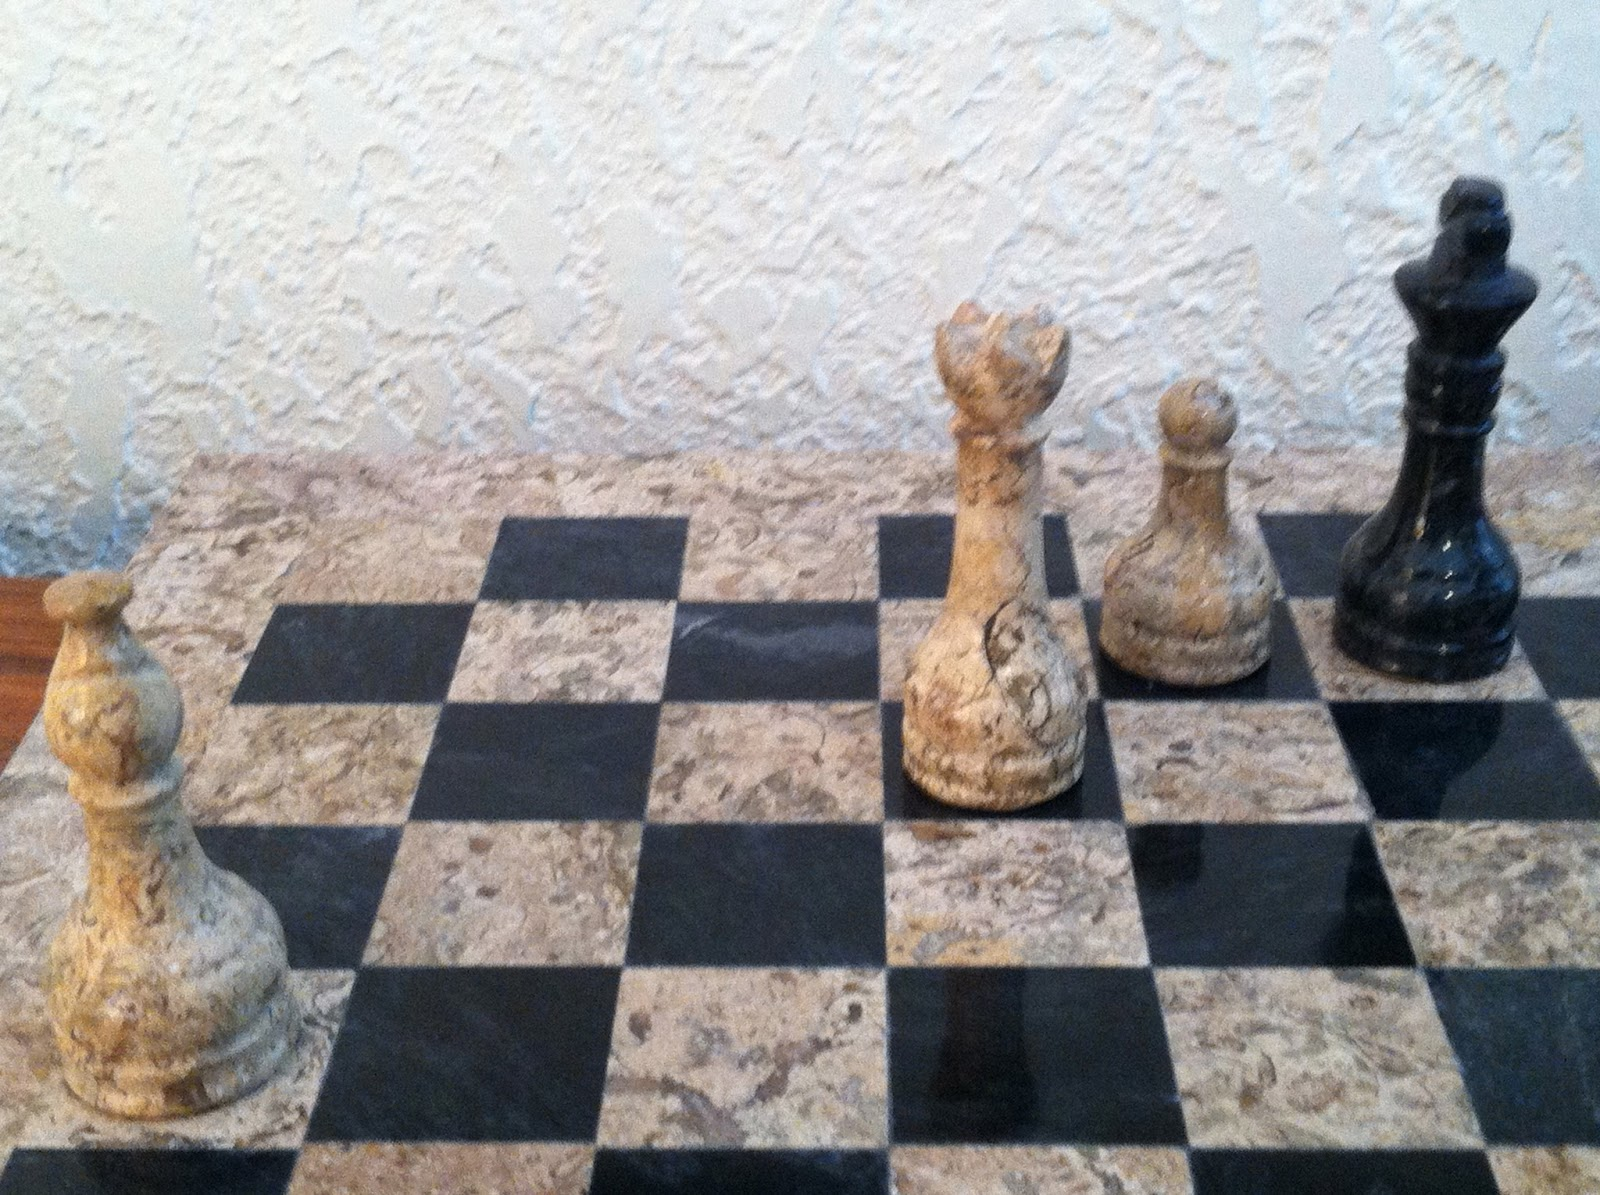 Marble Chess Board S Blog Chess Pawn Promotion Moves